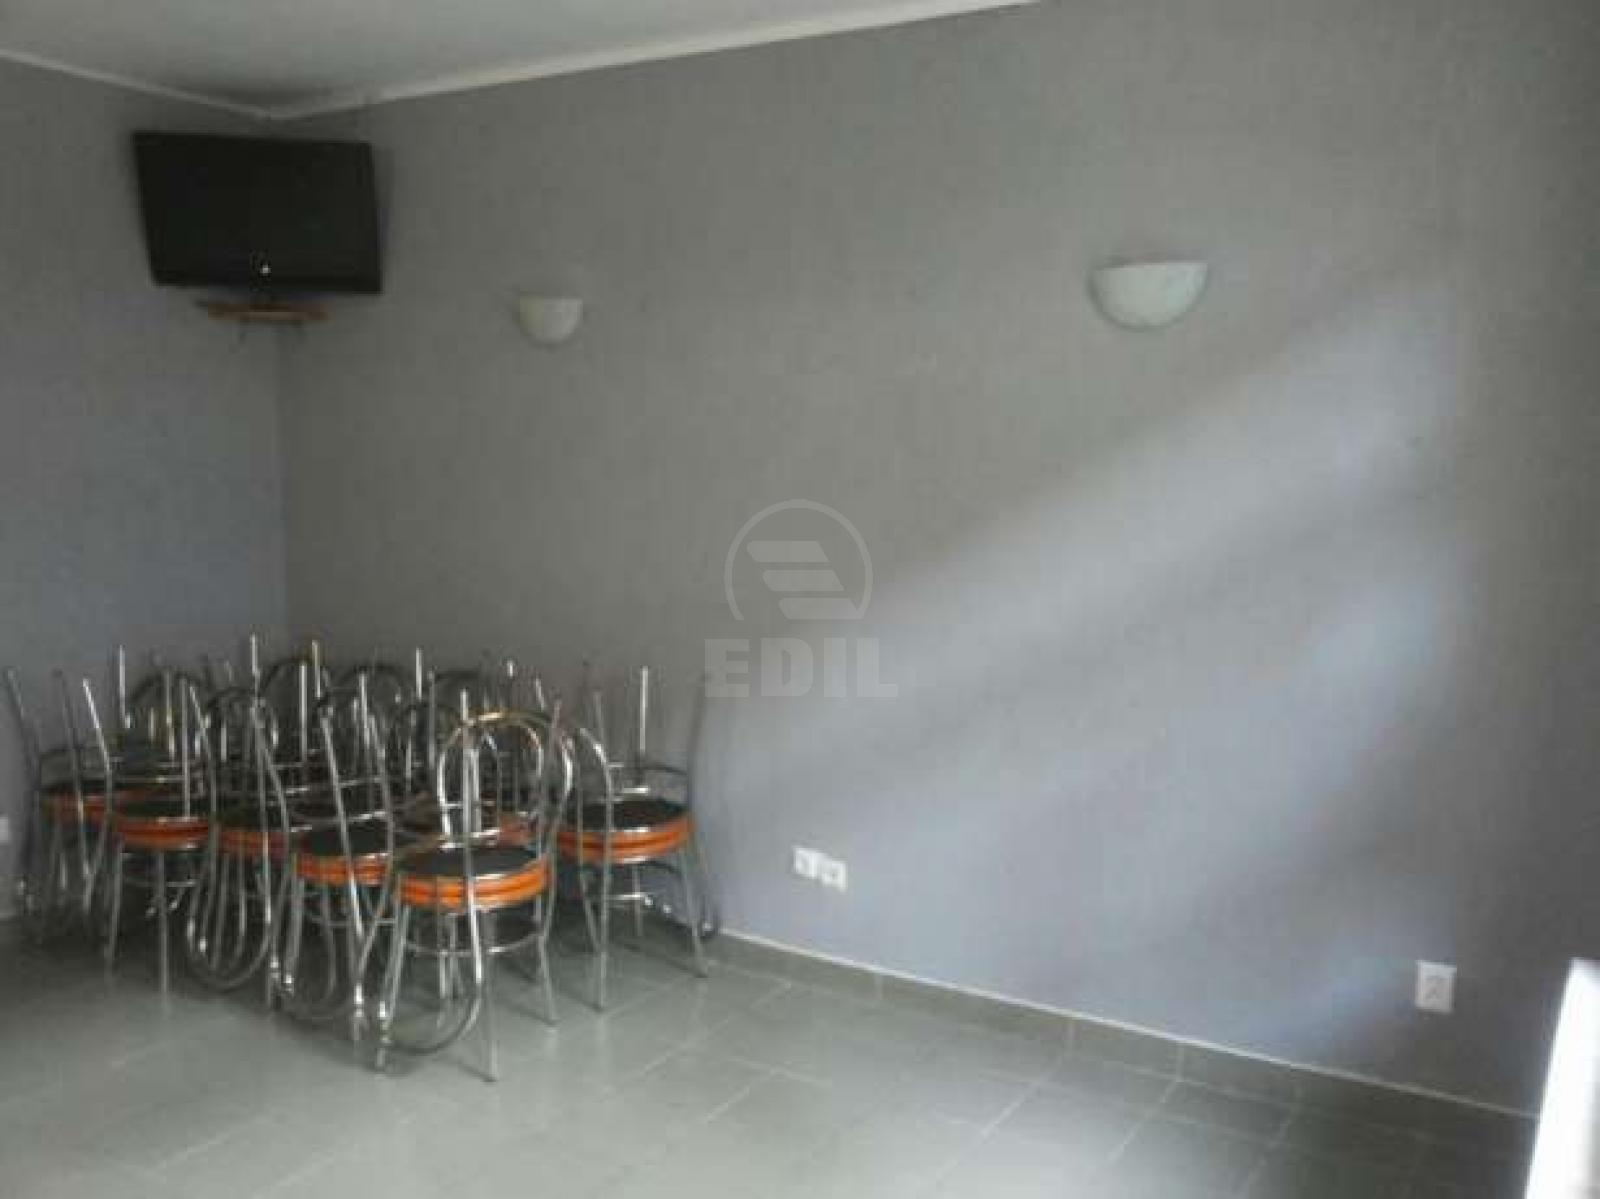 Commercial space for rent a room, SCCJ273718-5